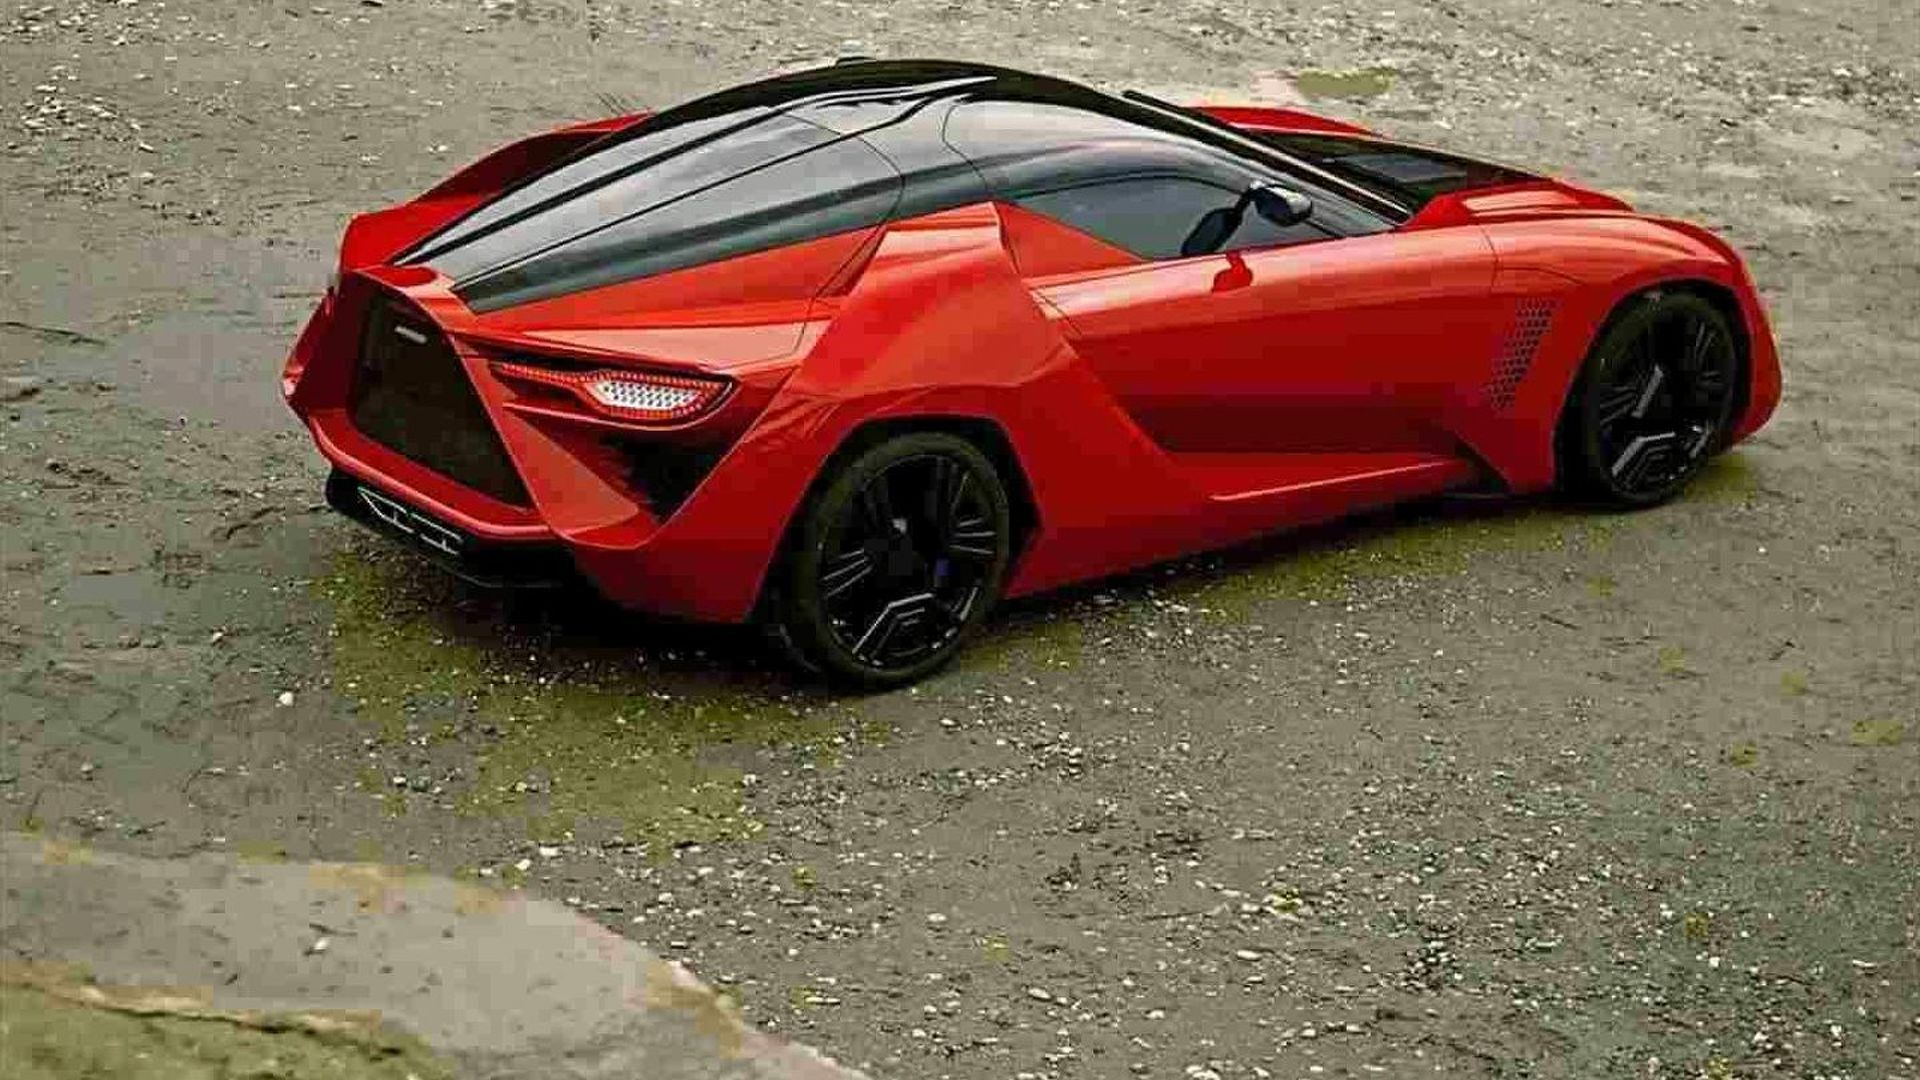 Bertone Mantide Production Expanded to 10 Units, gets $2million Price Tag - Report